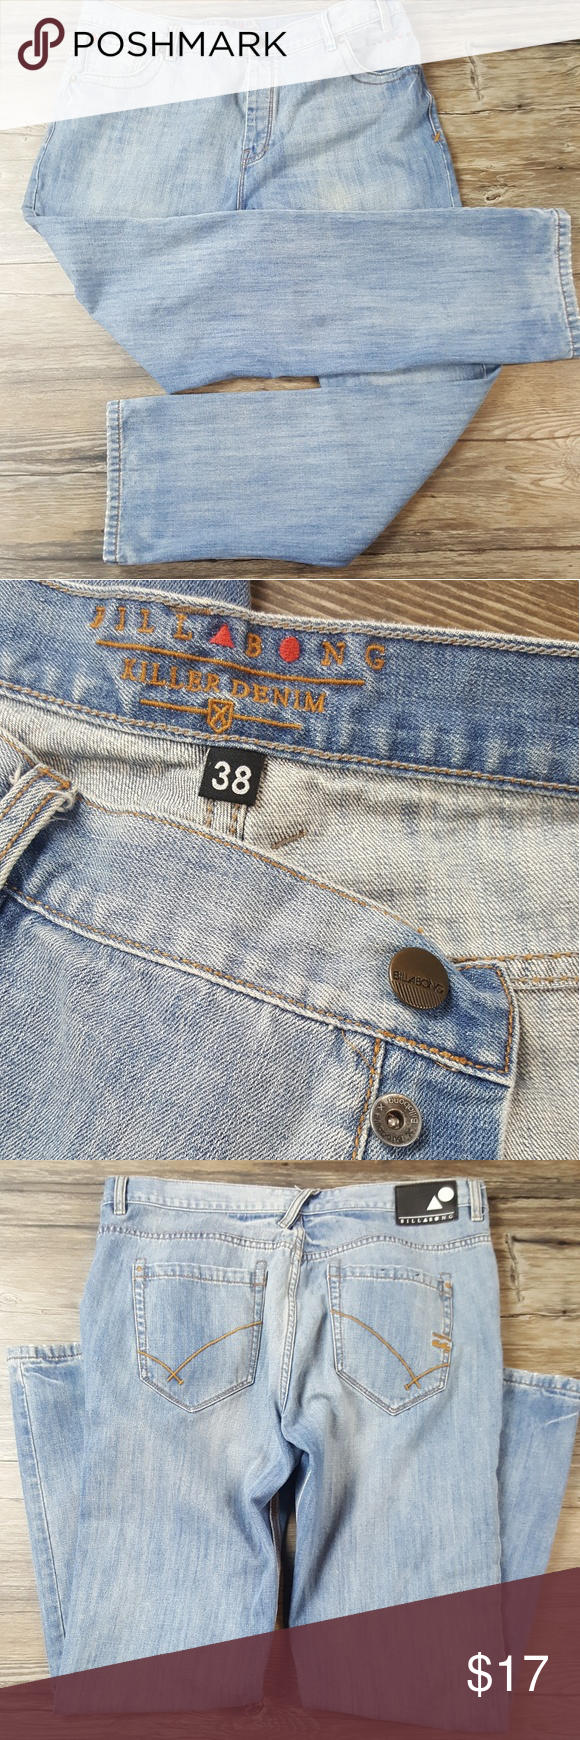 Billabong Killer Jeans Buttonfly 38 In 2018 My Posh Picks